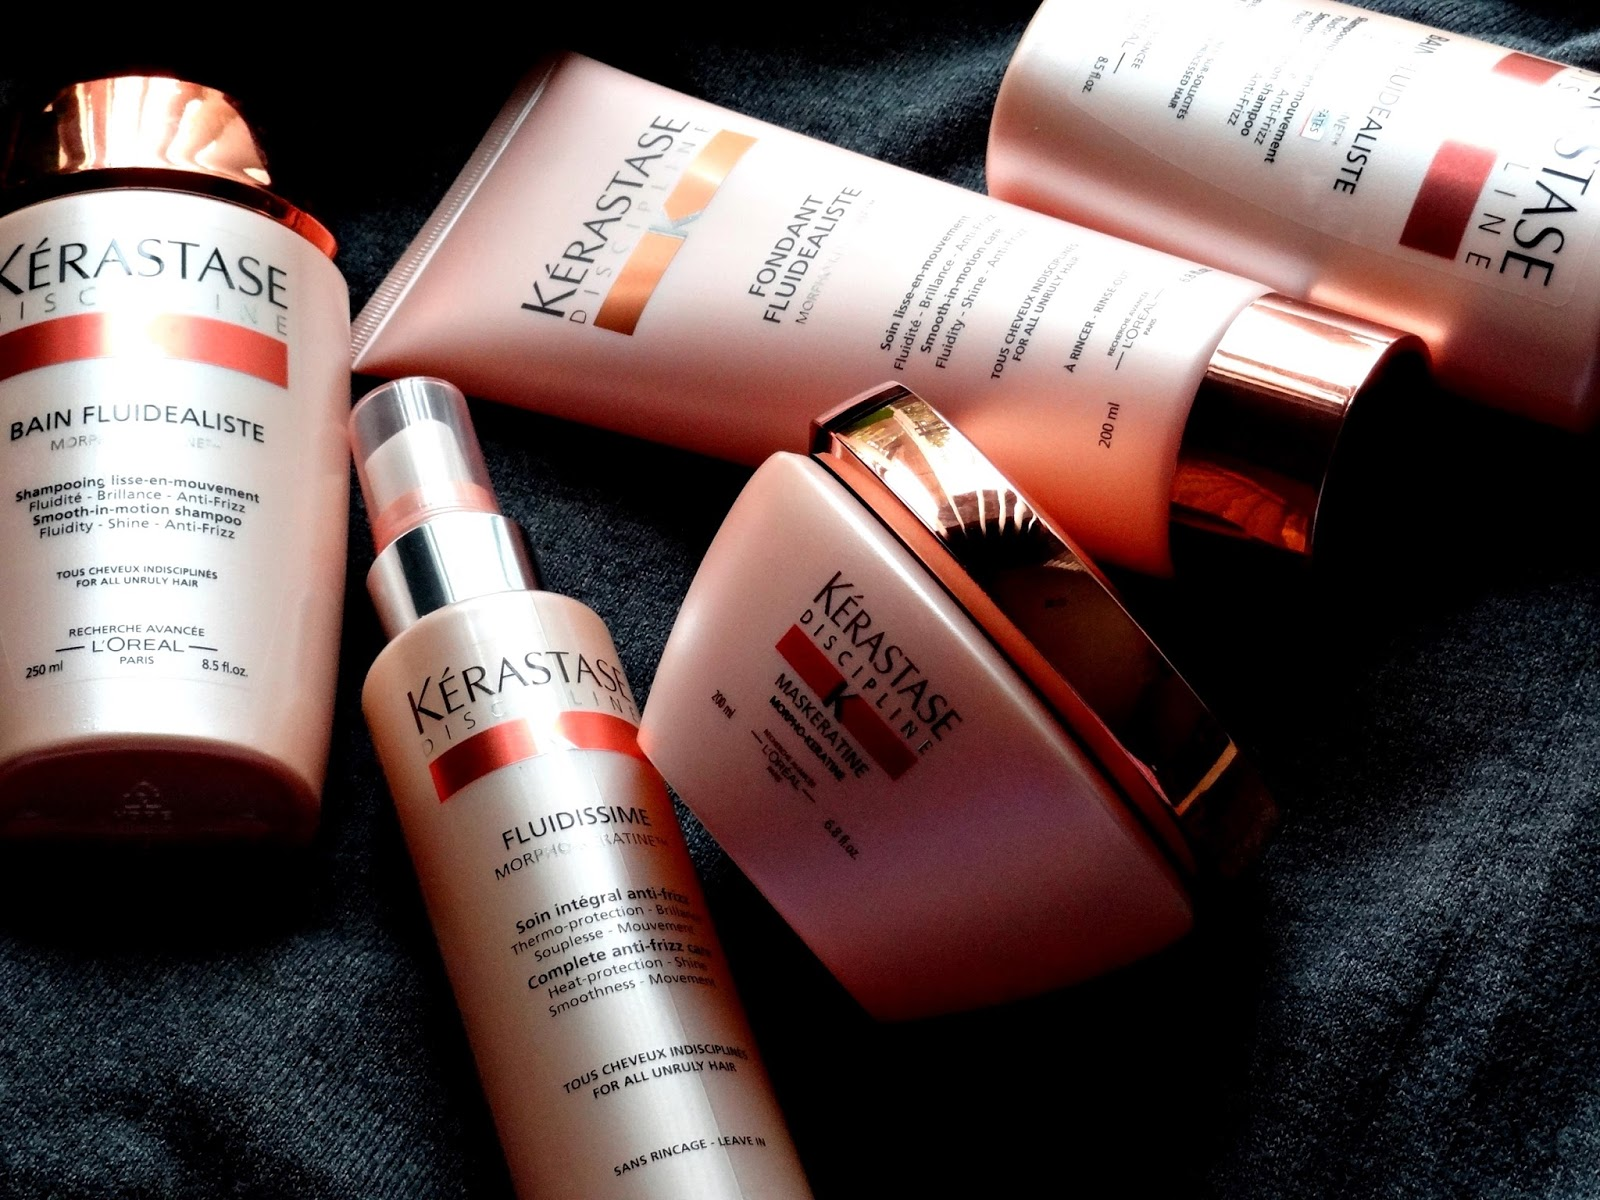 Kerastase Discipline Haircare Collection